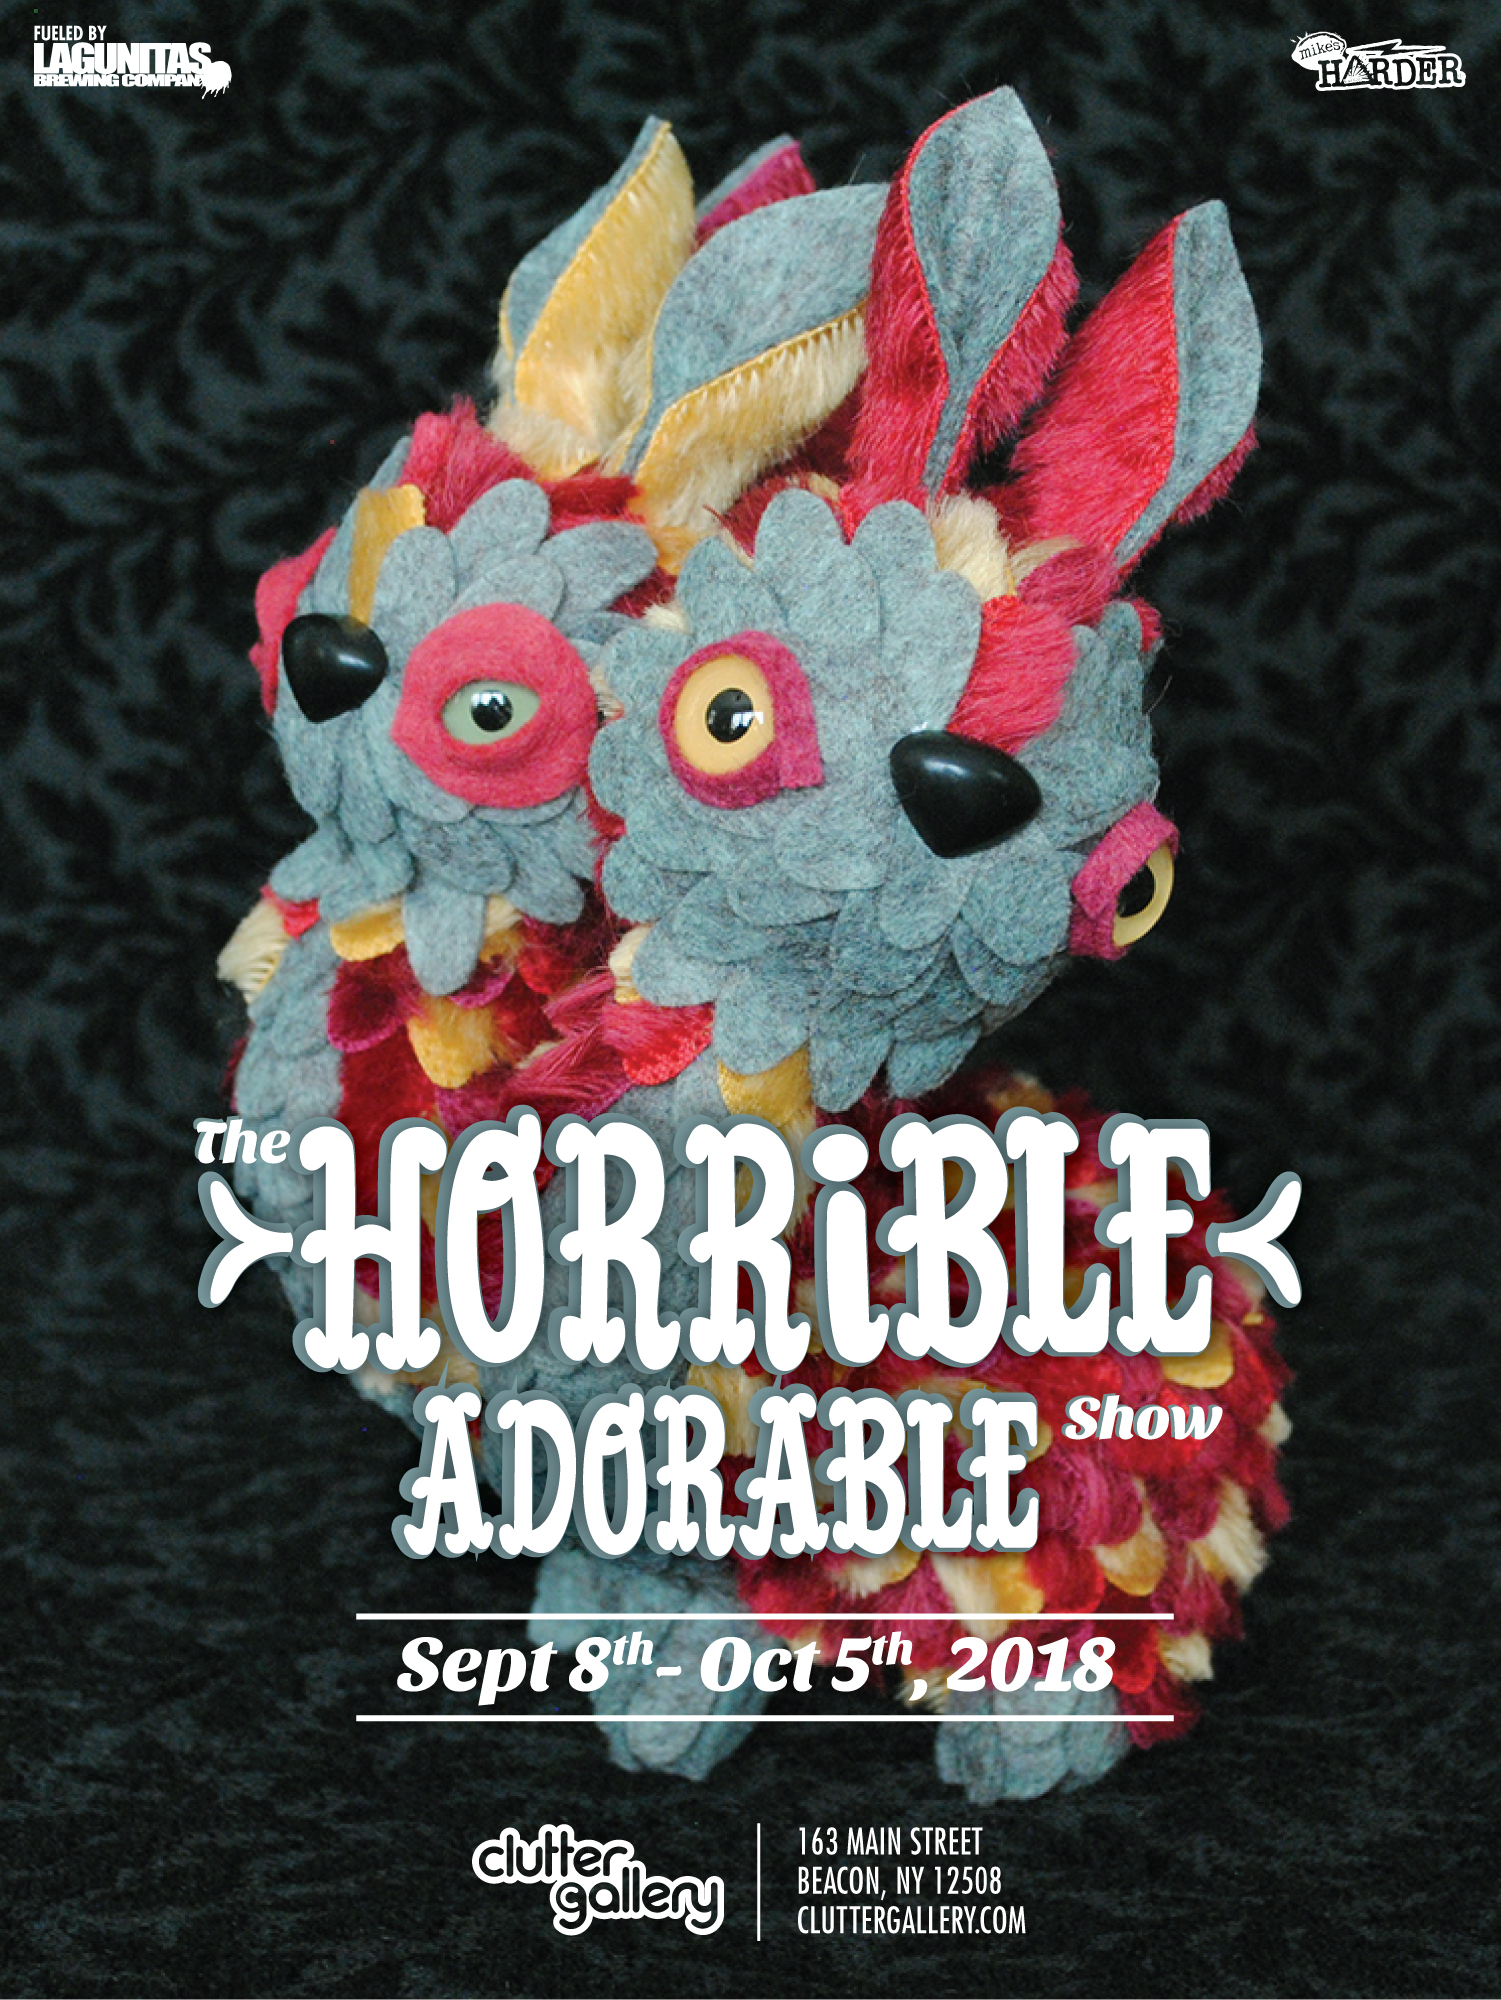 Horrible Adorables